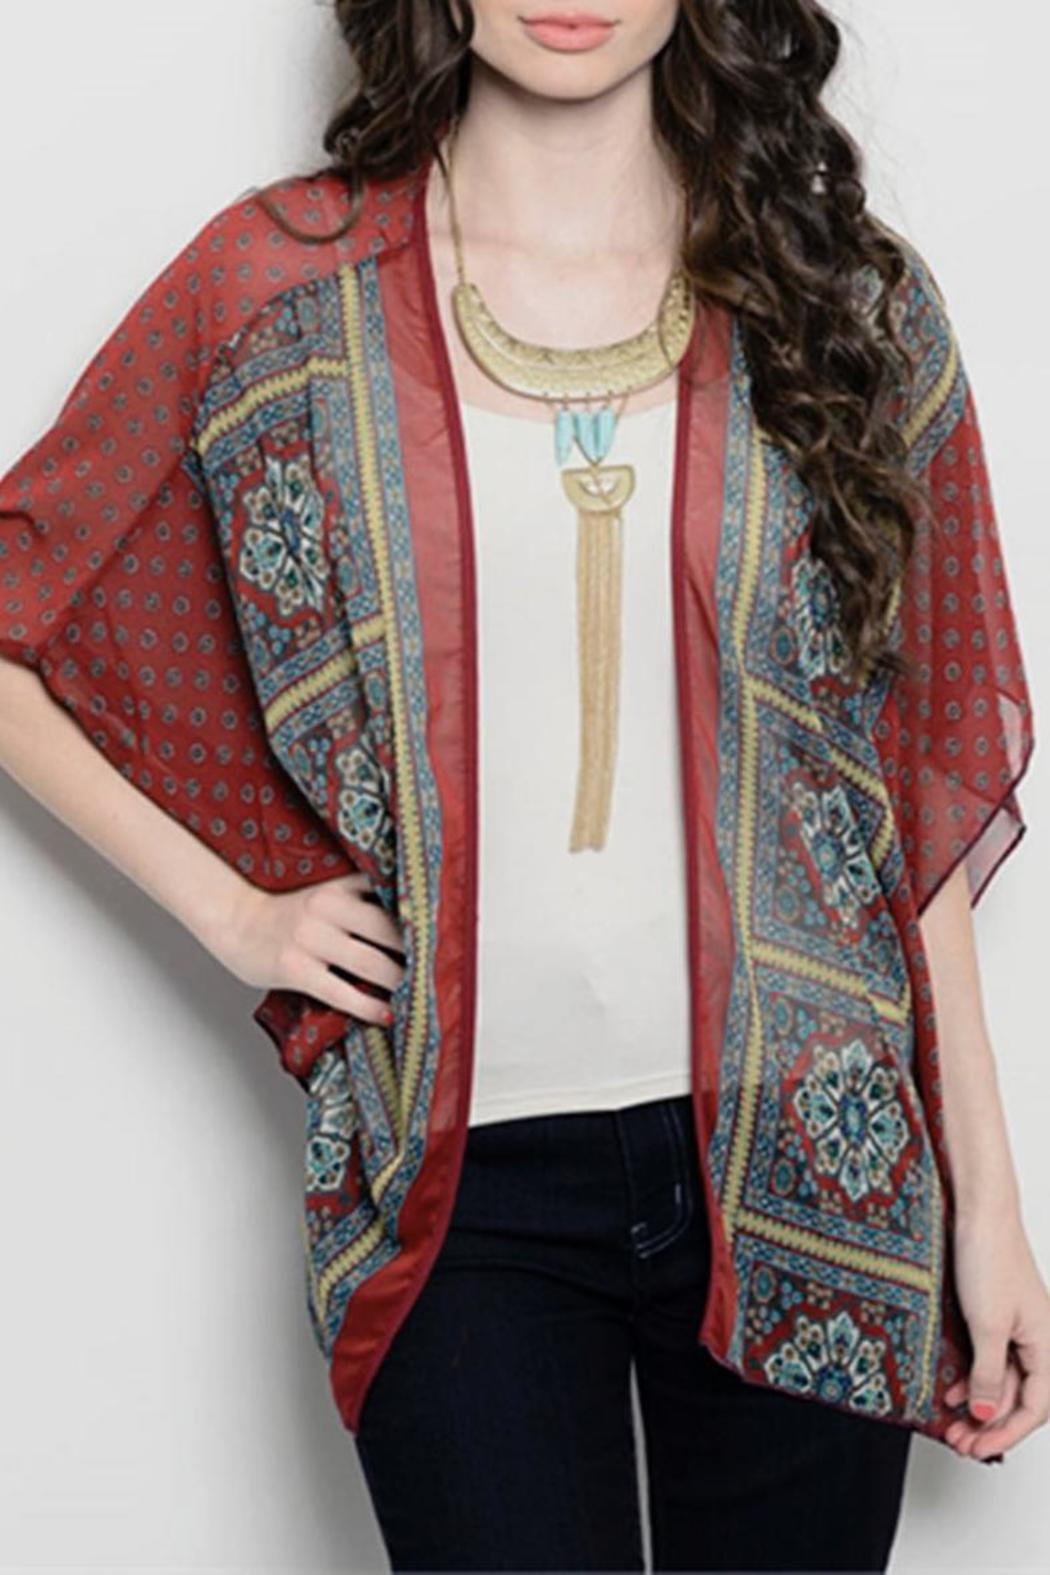 Yoyo 5 Maroon Kimono Cardigan from Tennessee by The Owl Cove ...